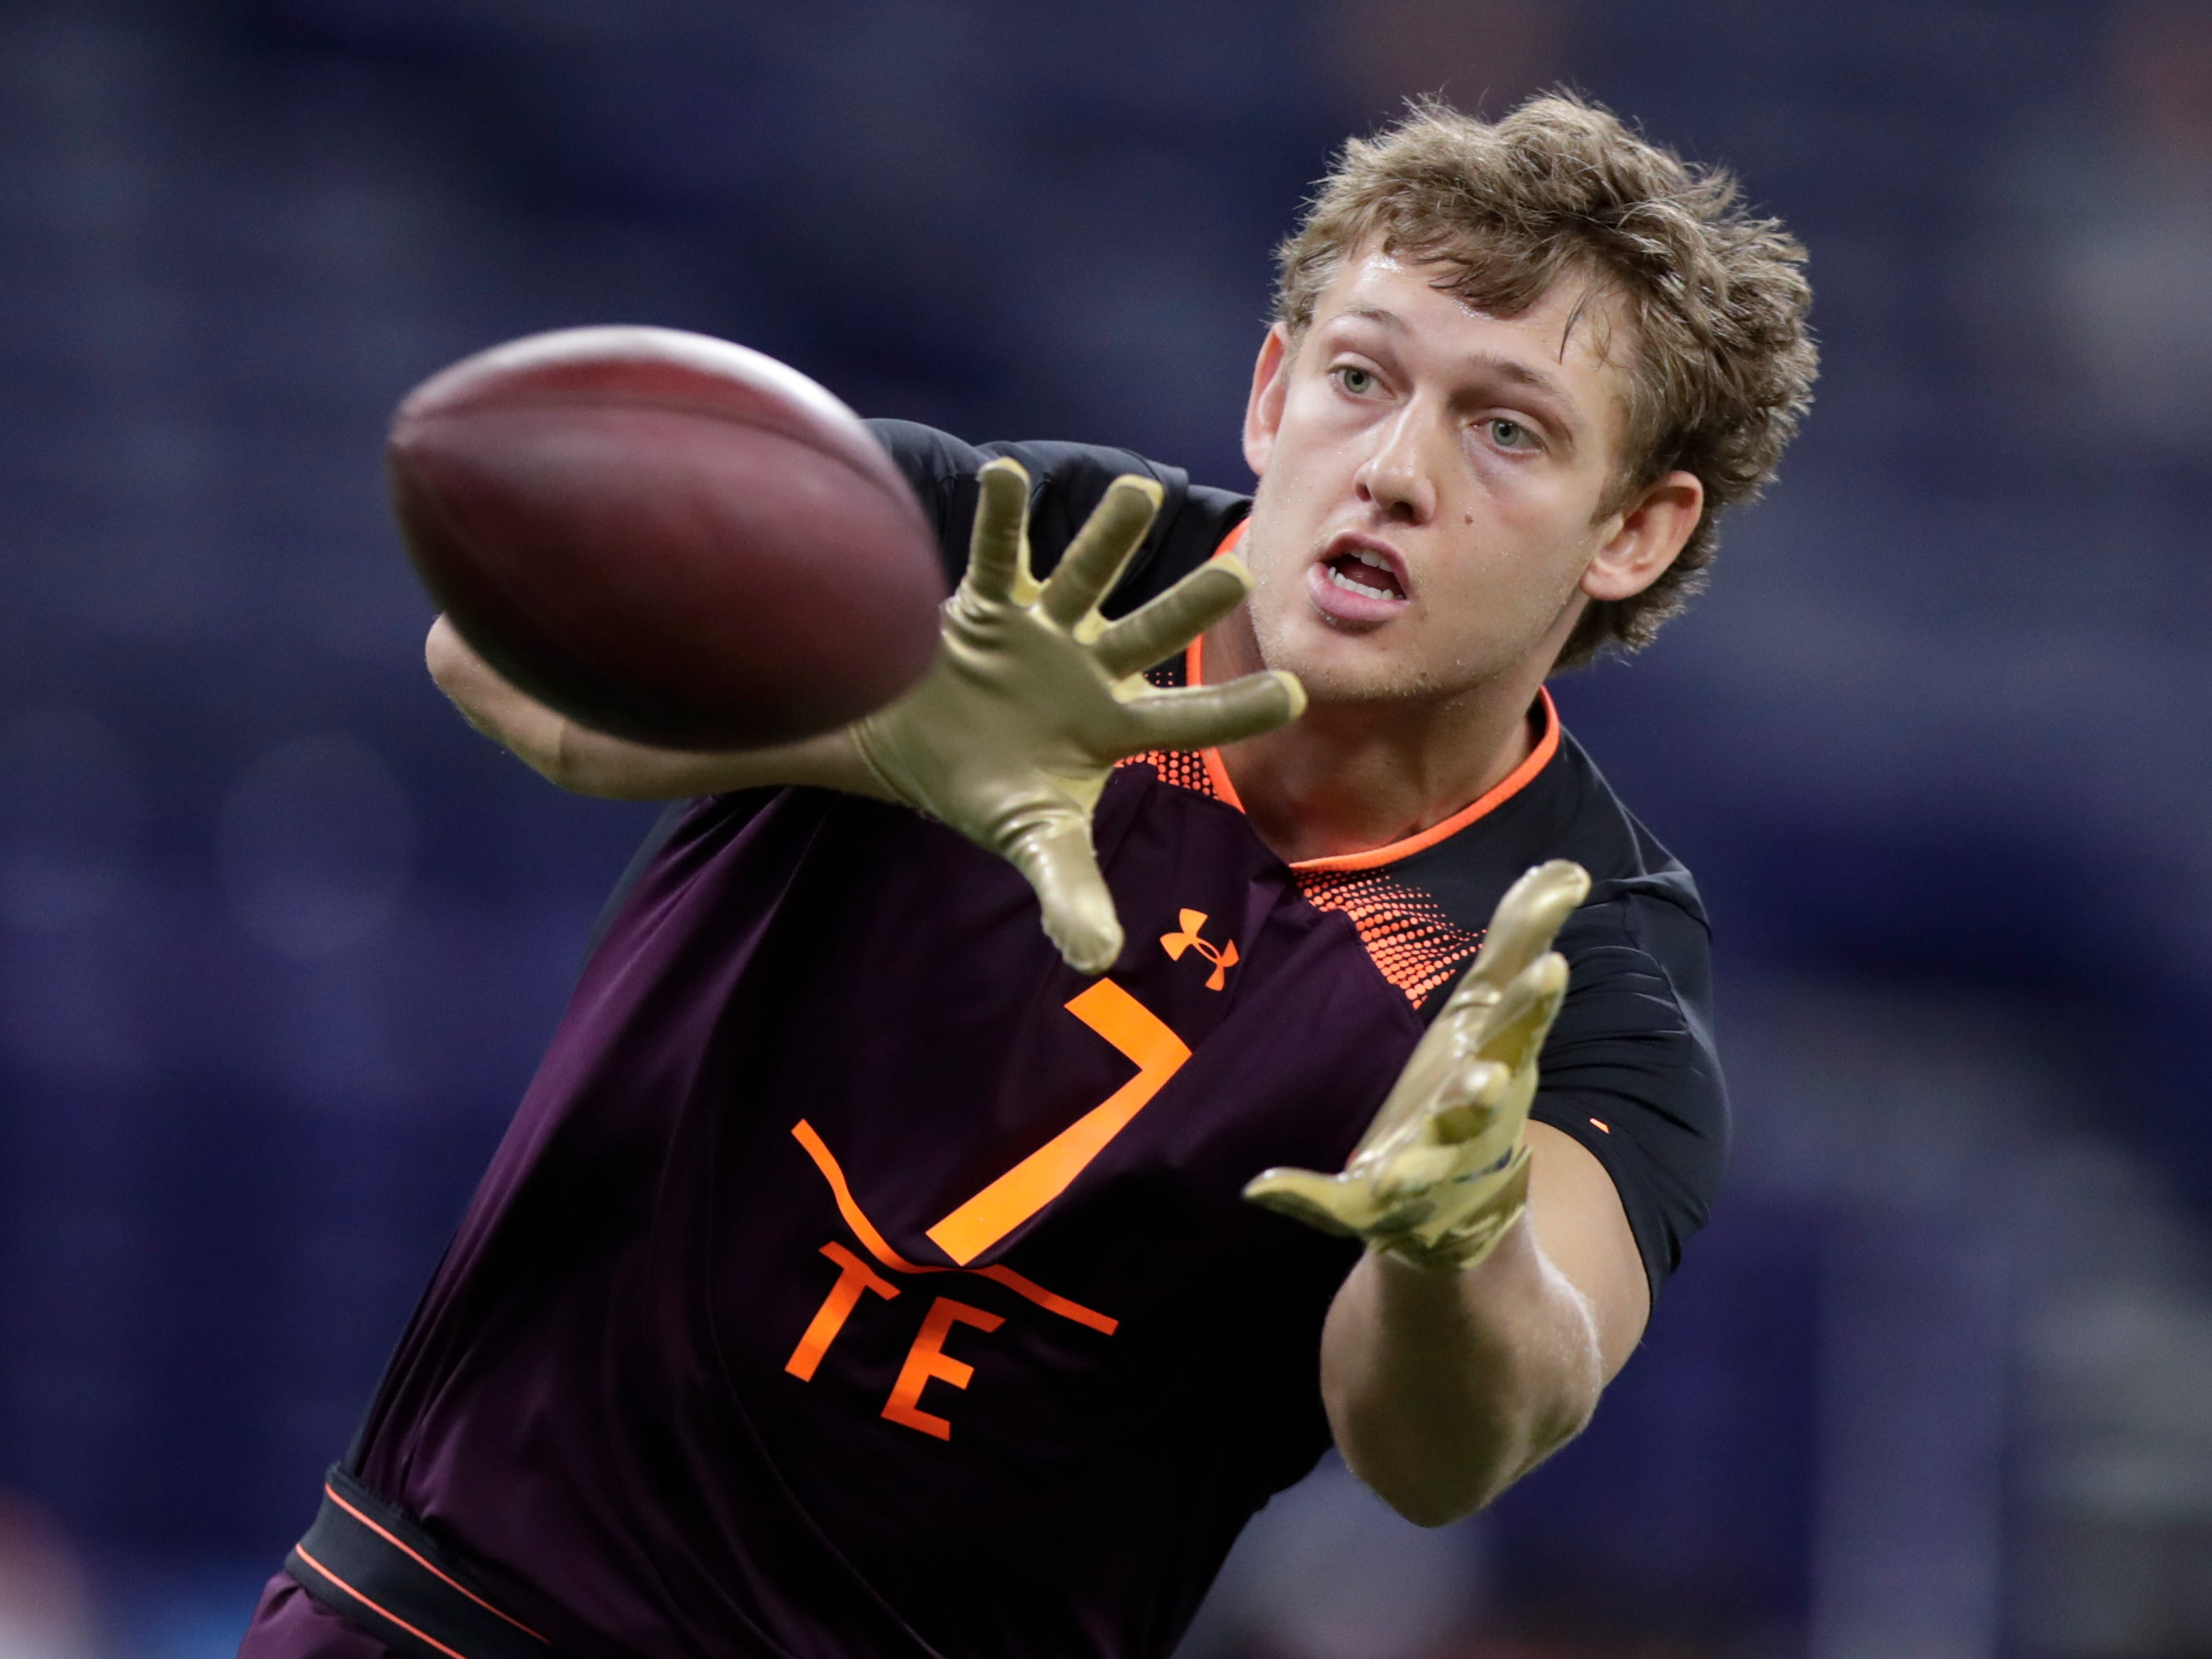 9. Buffalo Bills: TE T.J. Hockenson, Iowa – After filling their offensive line needs in free agency, the Bills can use this pick to give young QB Josh Allen a weapon, and Hockenson is better than any receiver in the draft.